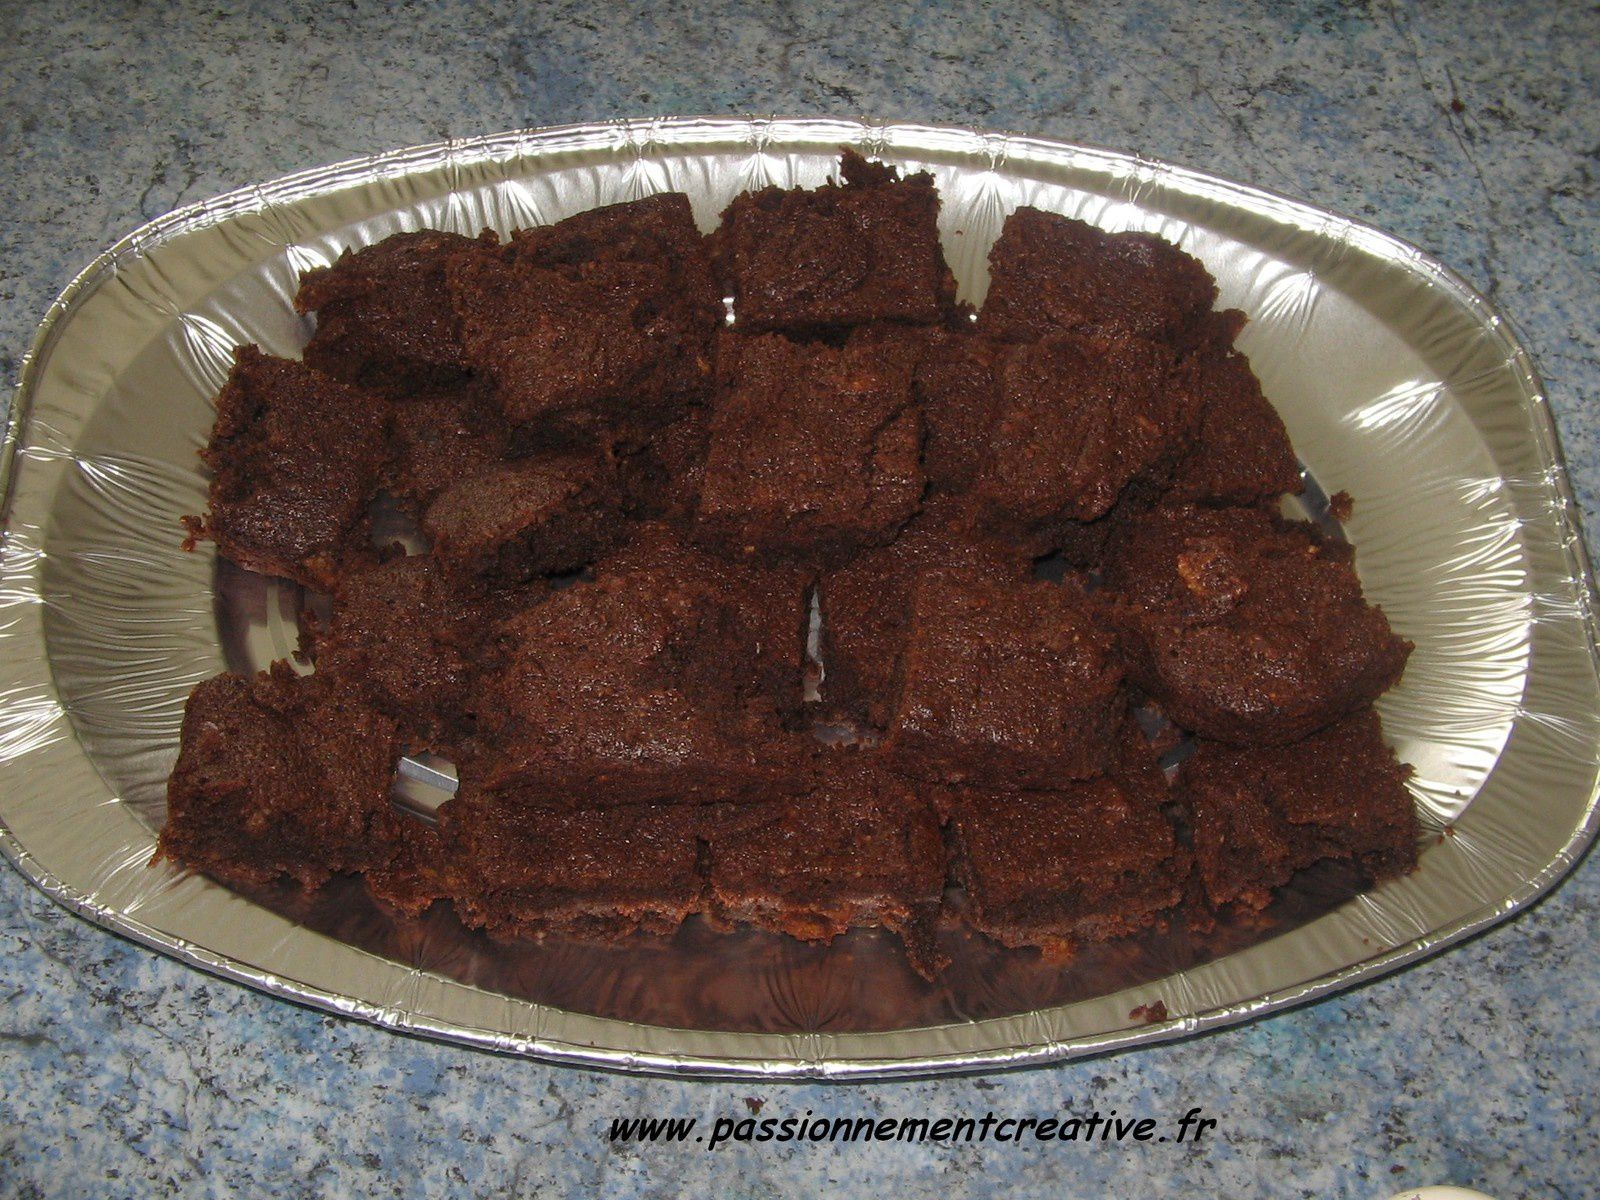 Brownie aux corn flakes